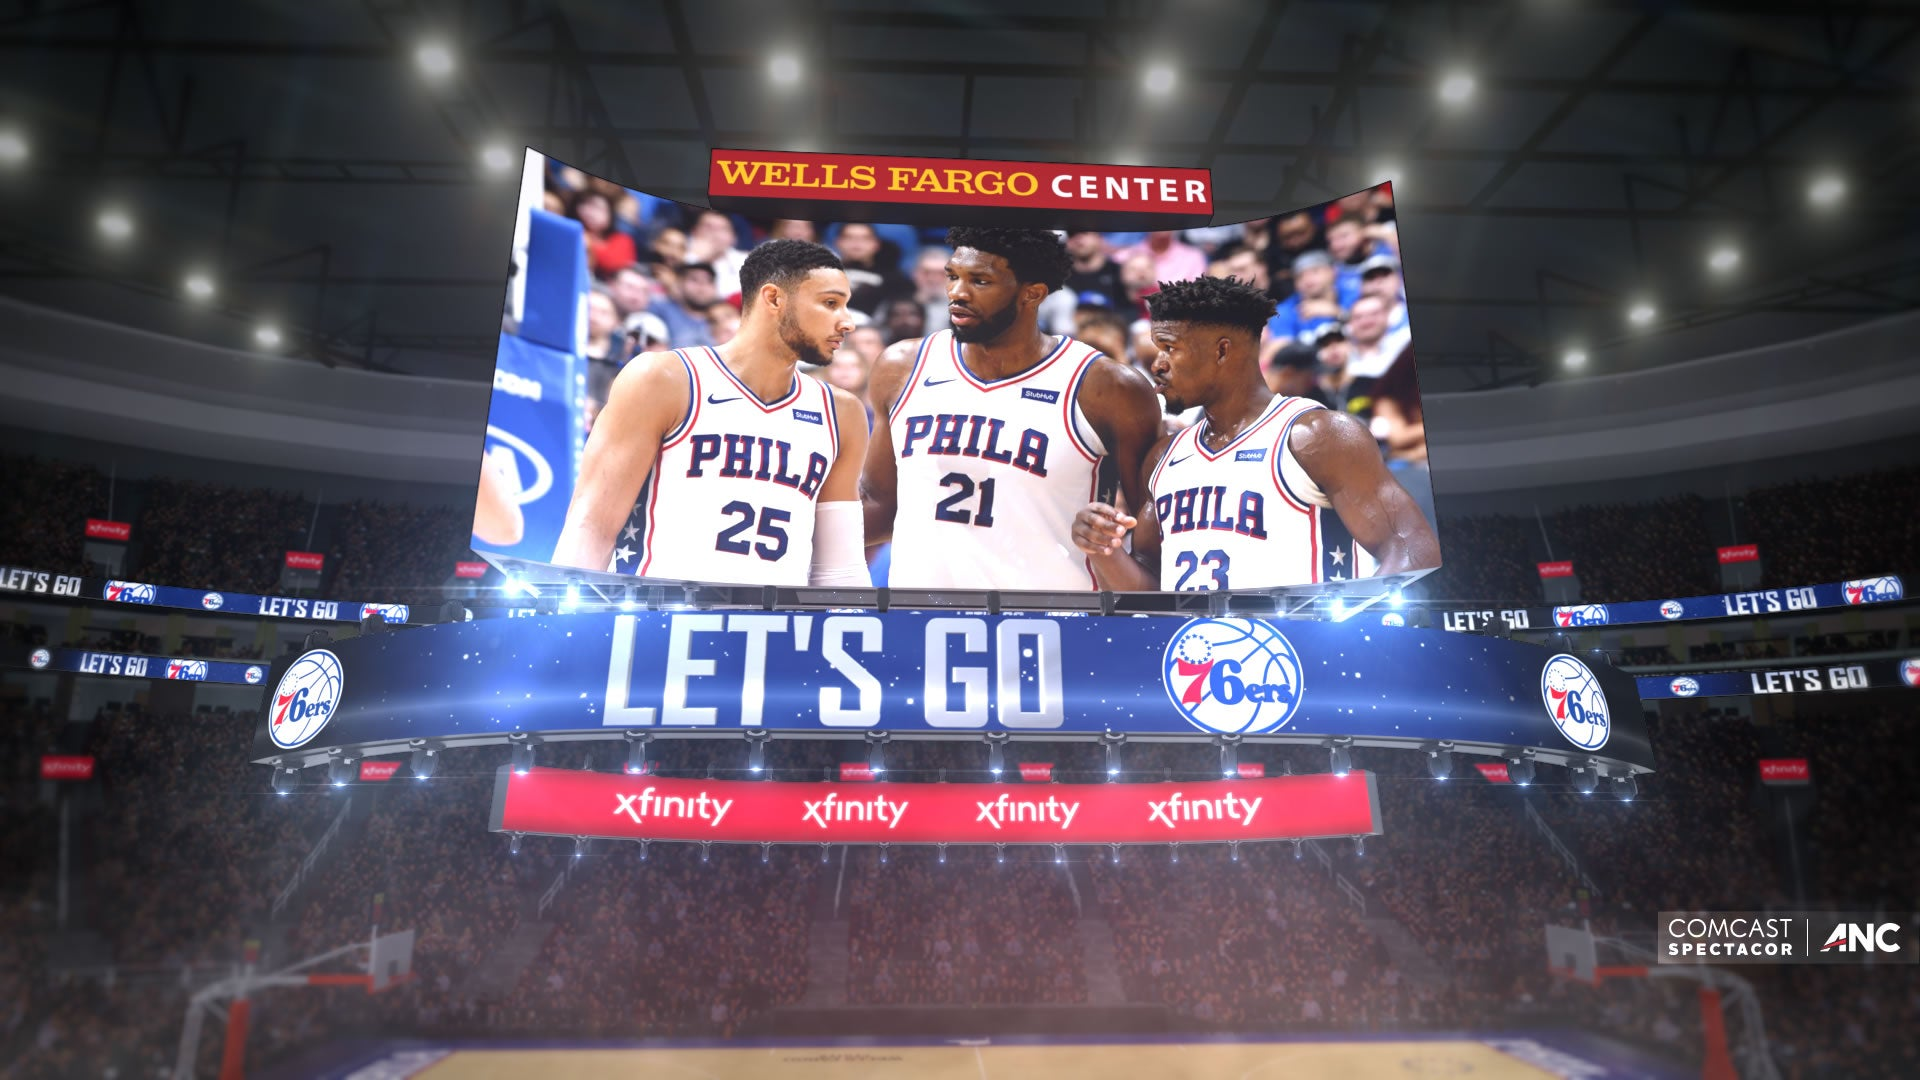 Wells Fargo Center to Introduce the World's First Kinetic 4K